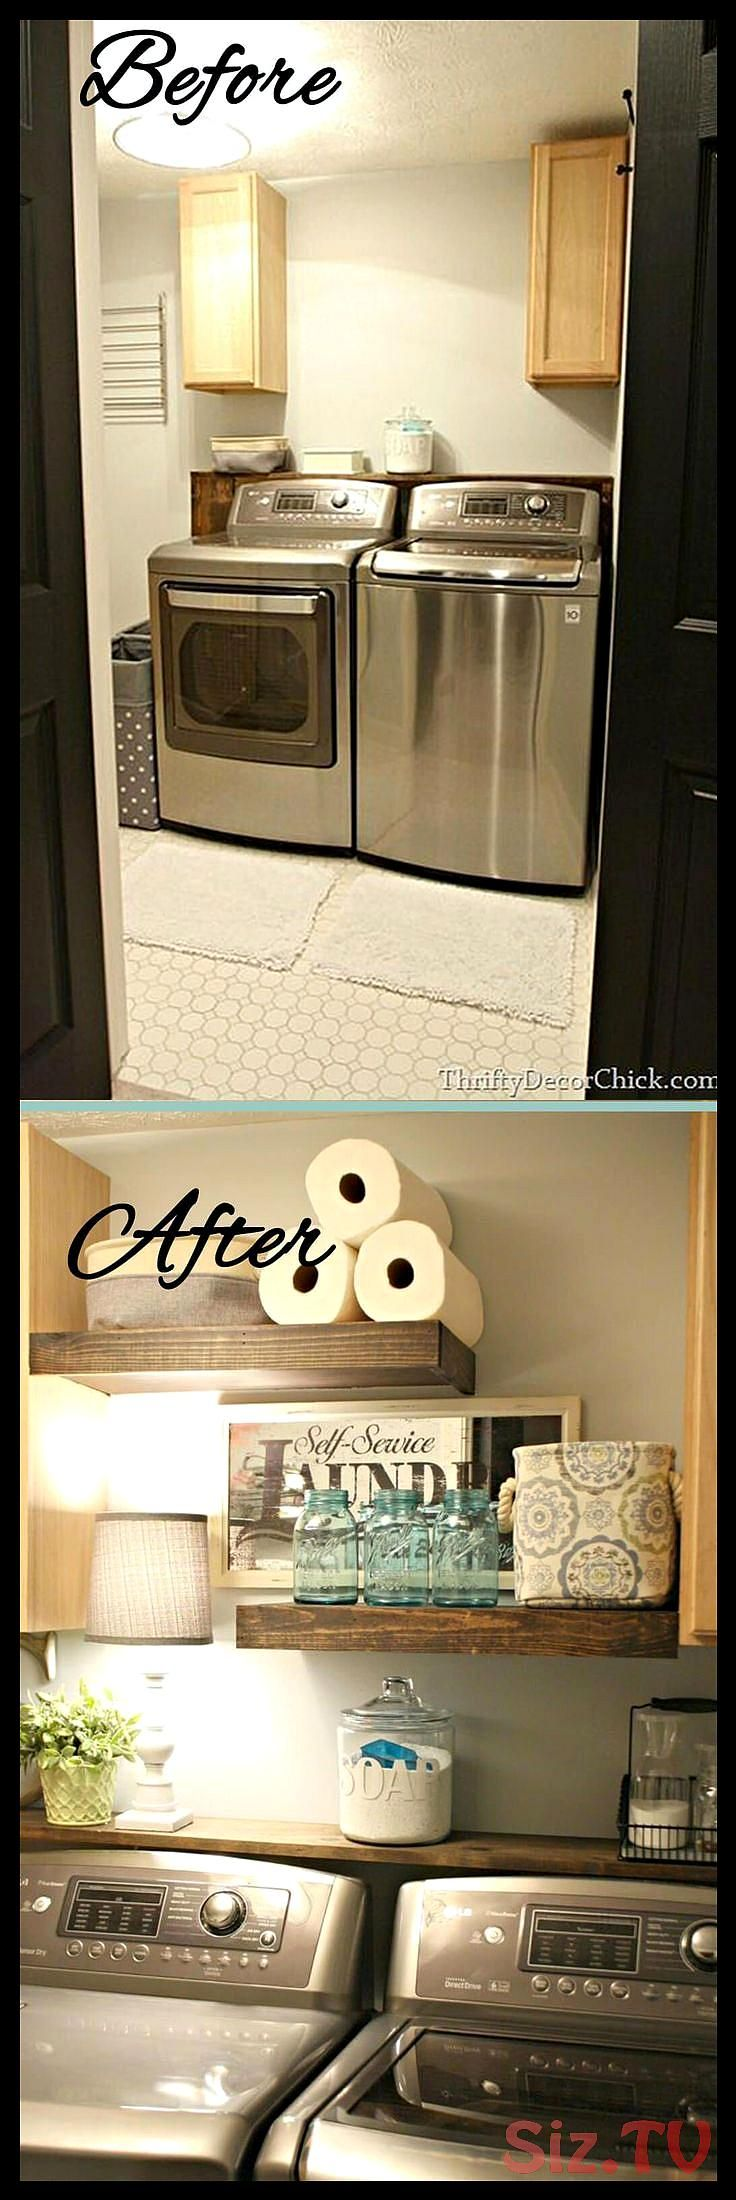 Exceptionallaundry room storage small shelvesdetail is available on our internet site Have a look and you wont be sorry you did Exceptionallaundry room storage small shel...